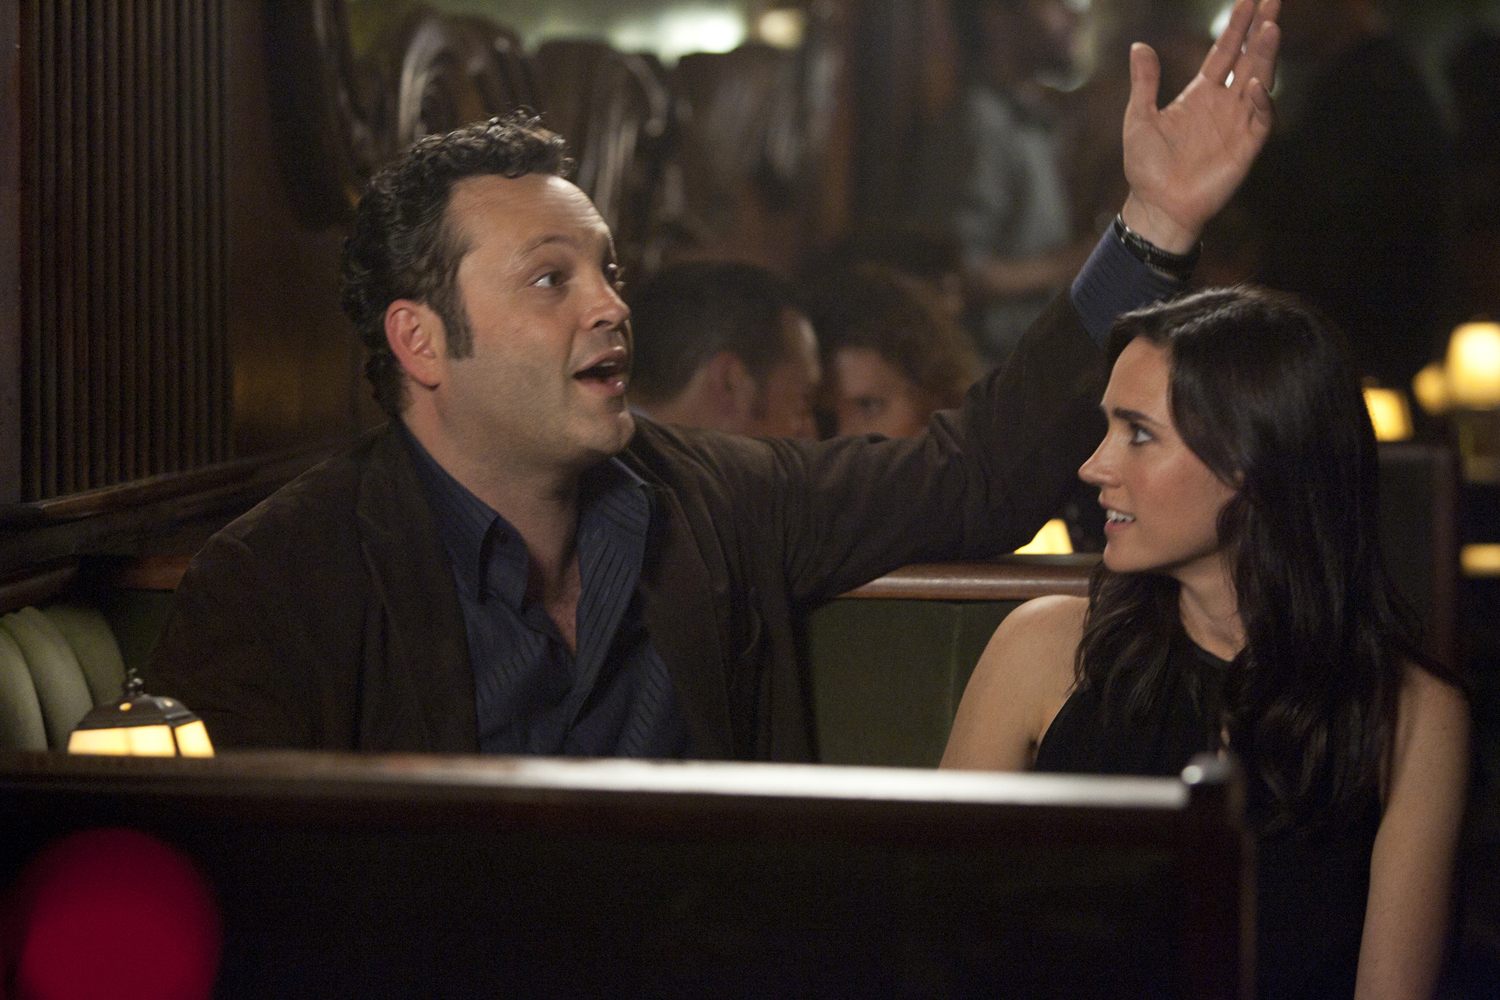 Jennifer Connelly and Vince Vaughn in The Dilemma (2011)